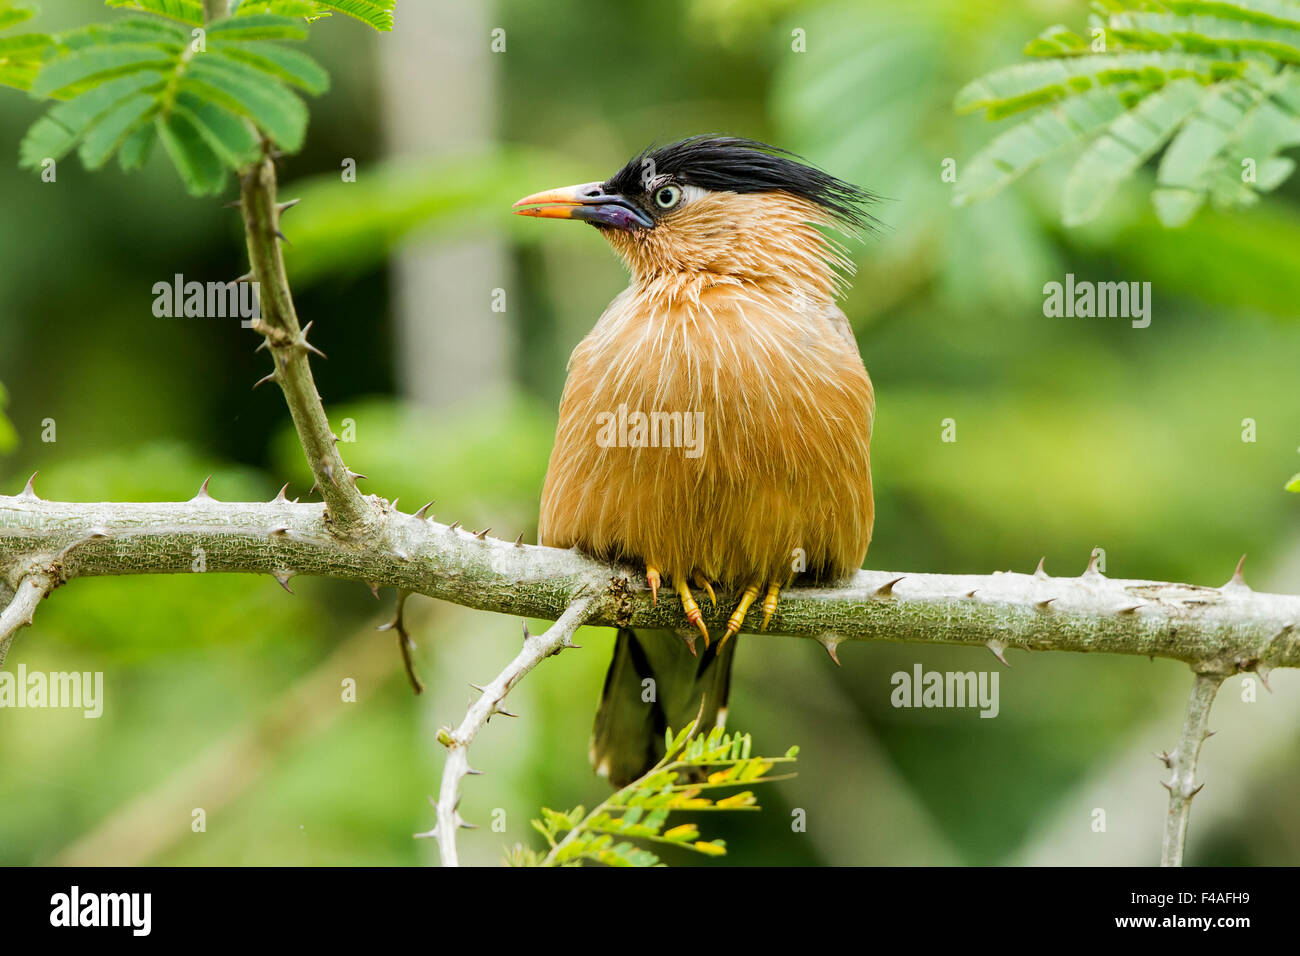 The brahminy myna or brahminy starling (Sturnia pagodarum) is a member of the starling family of birds - Stock Image